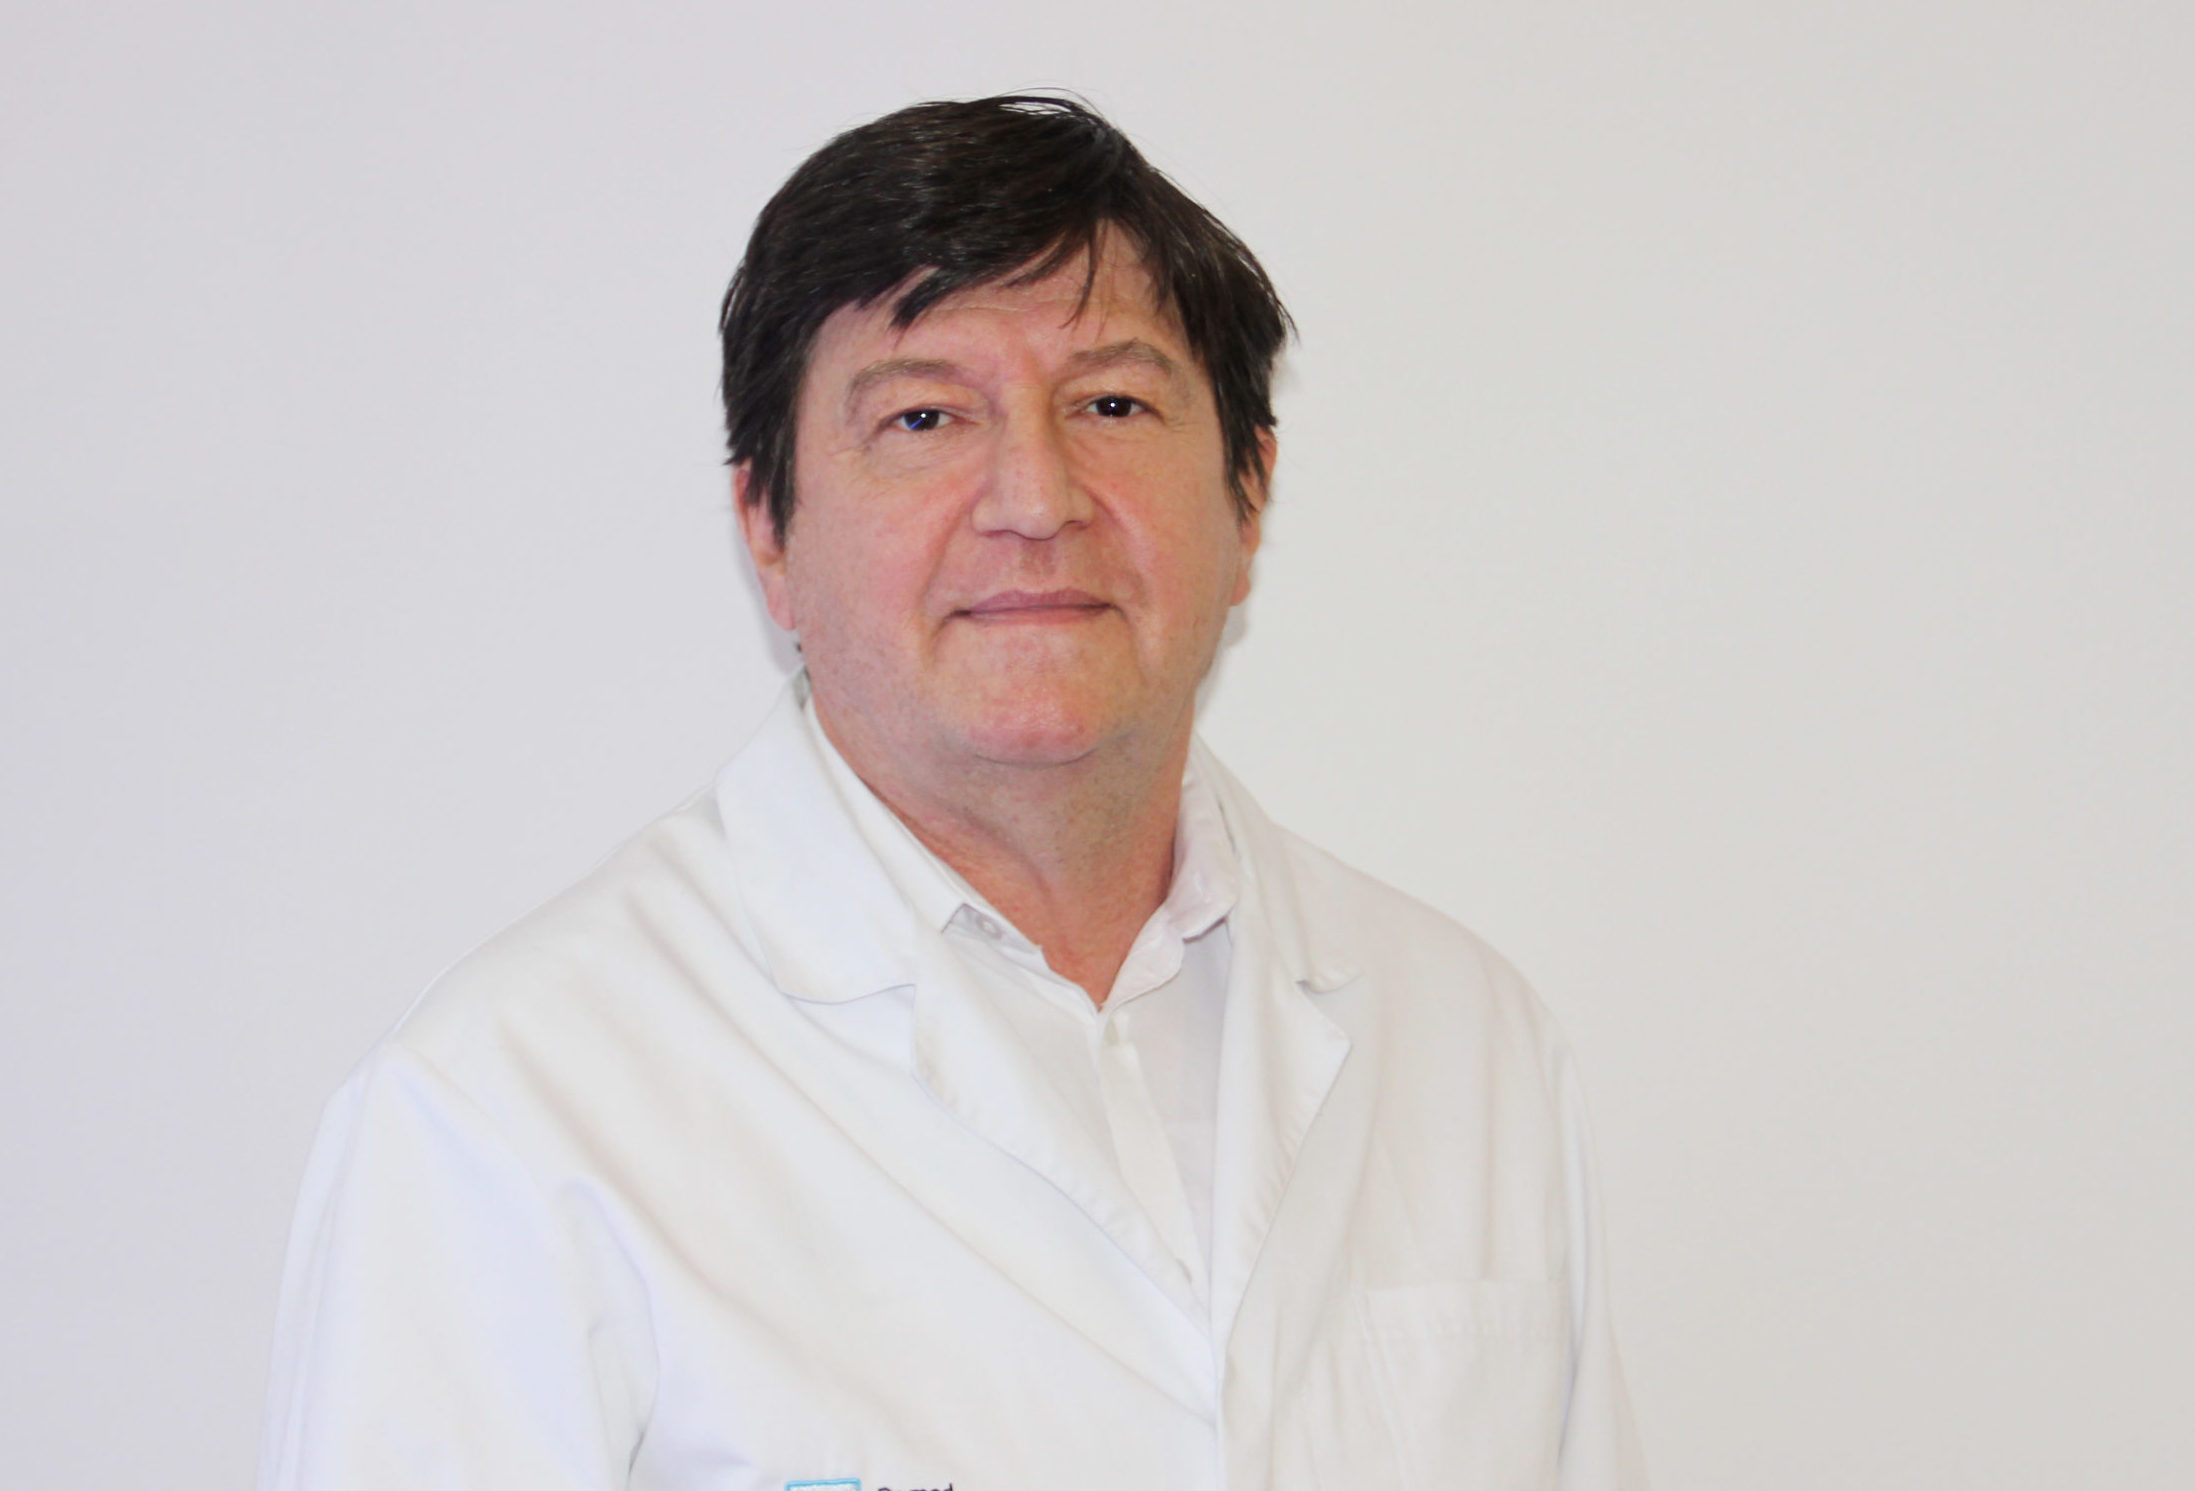 Dr. med. Andreas Langbein